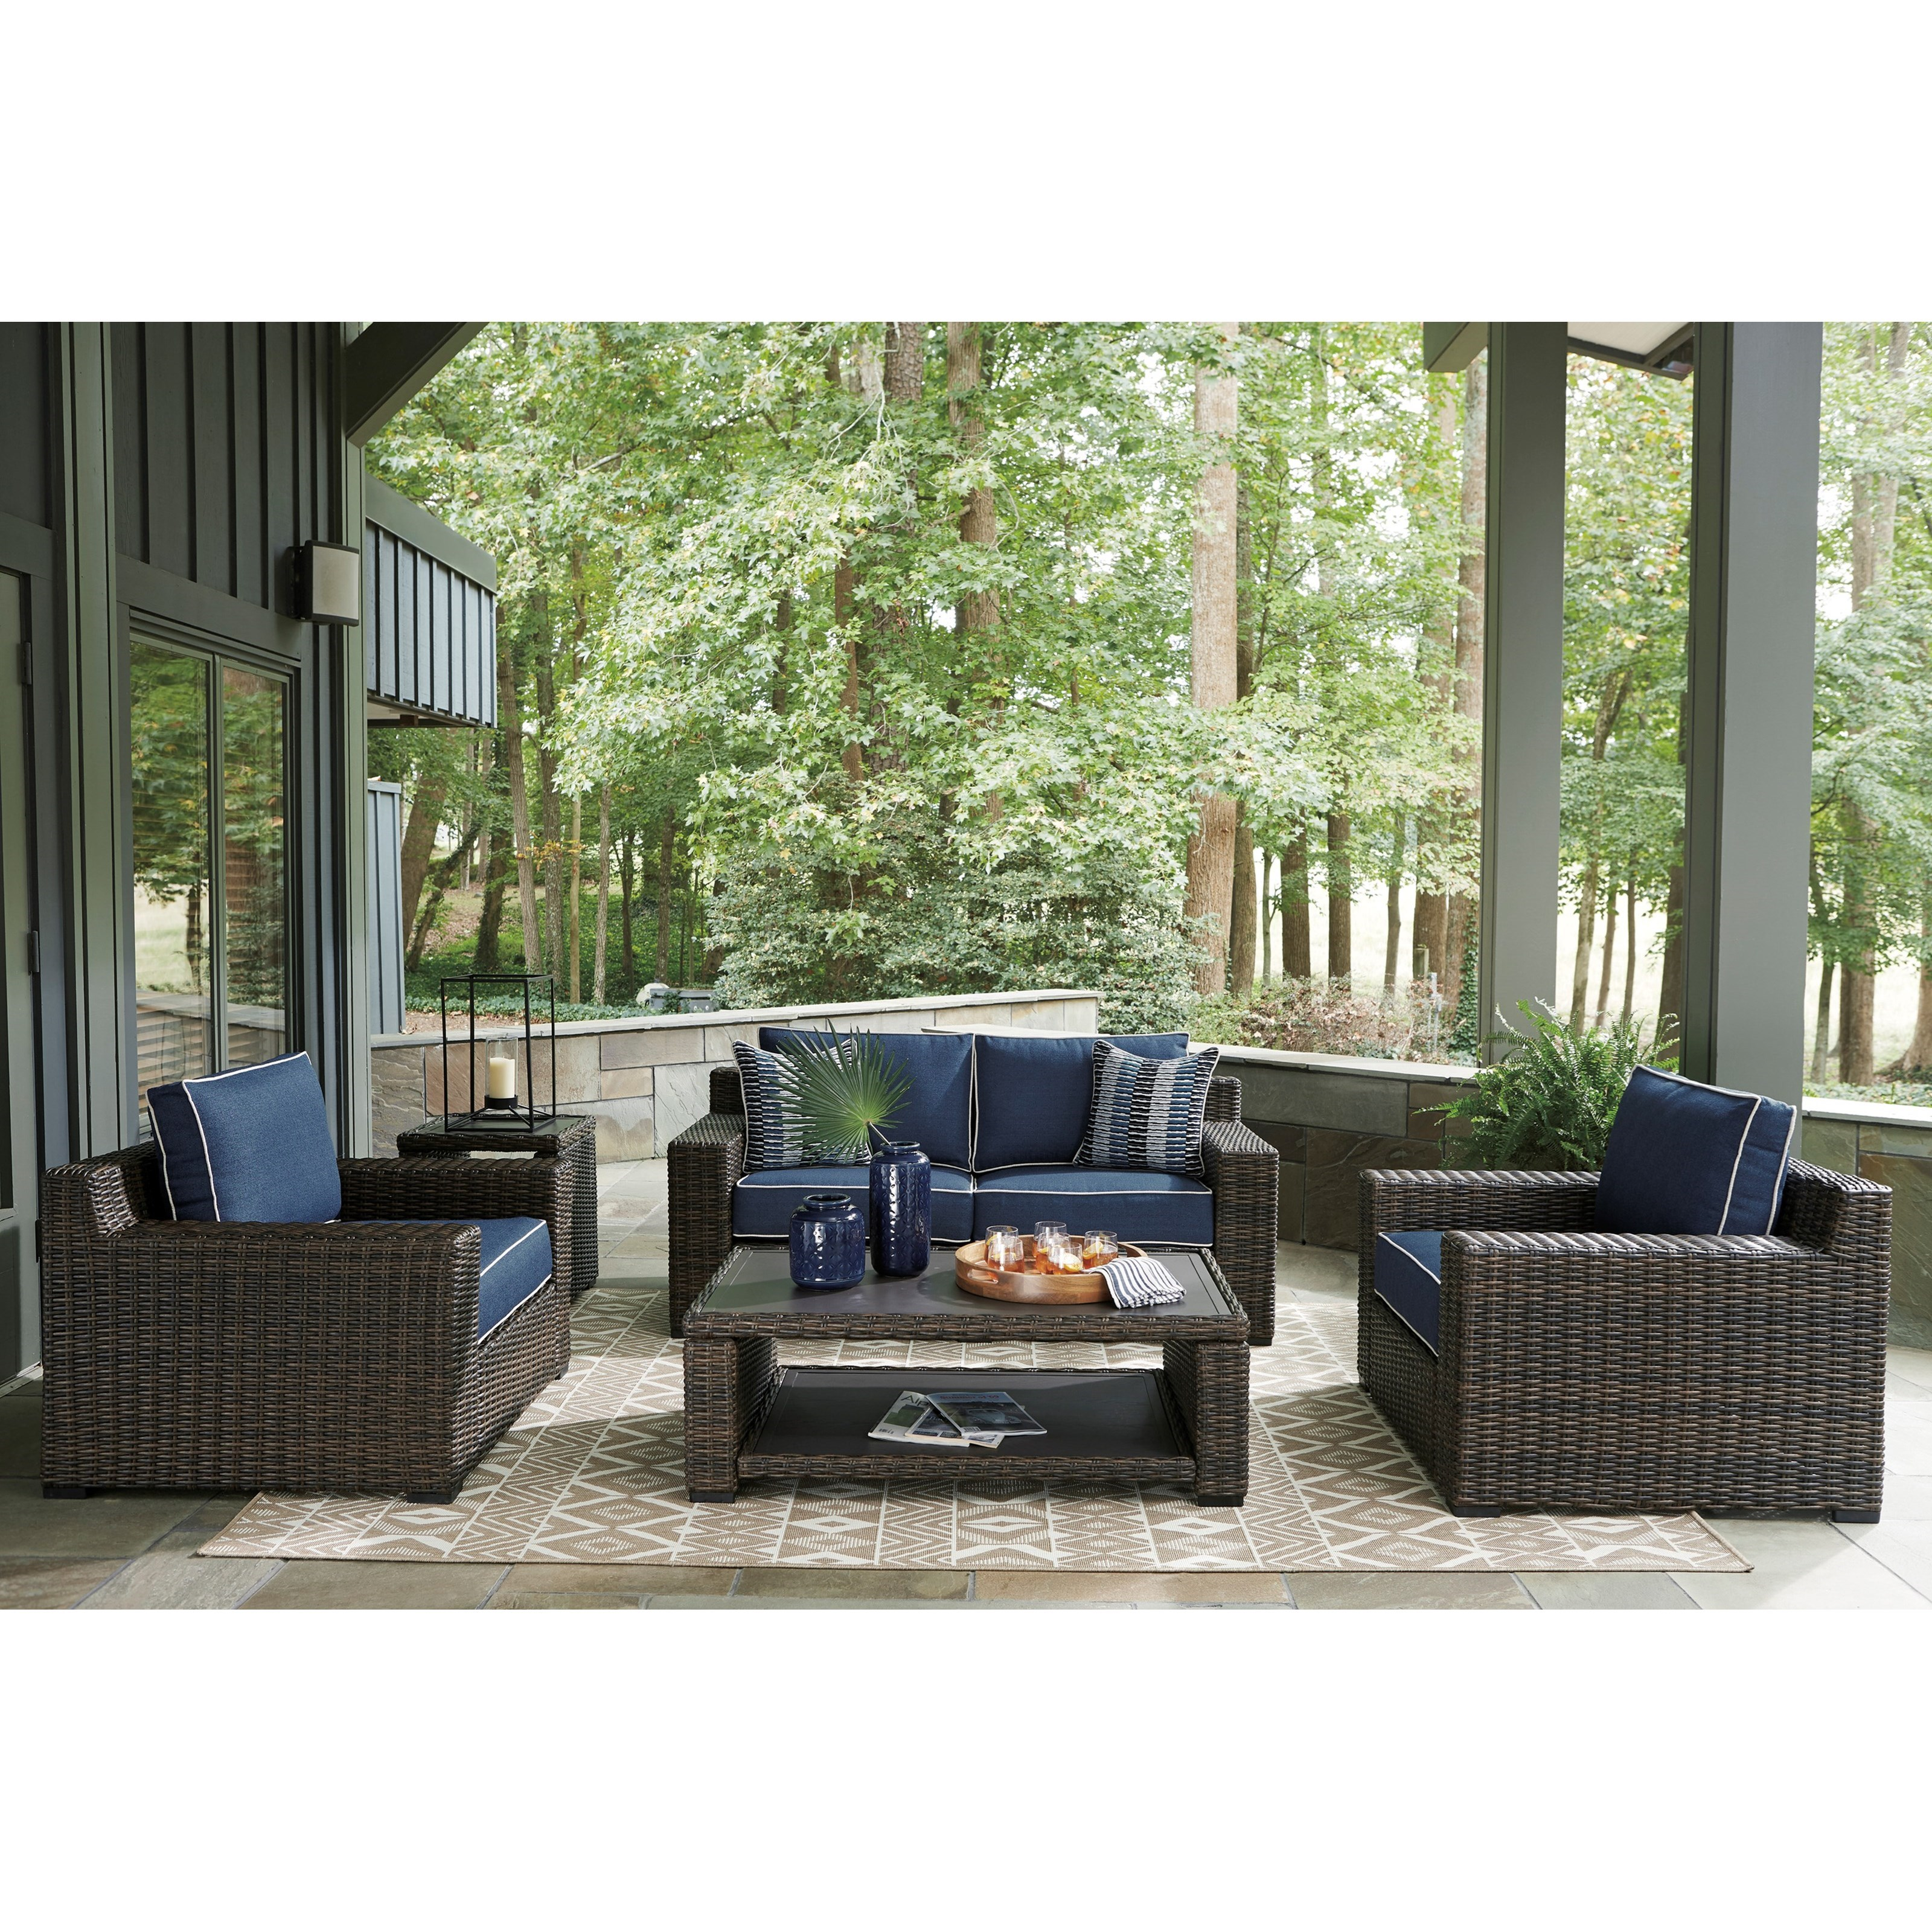 Grasson Lane Outdoor Conversation Set by Signature Design by Ashley at Value City Furniture